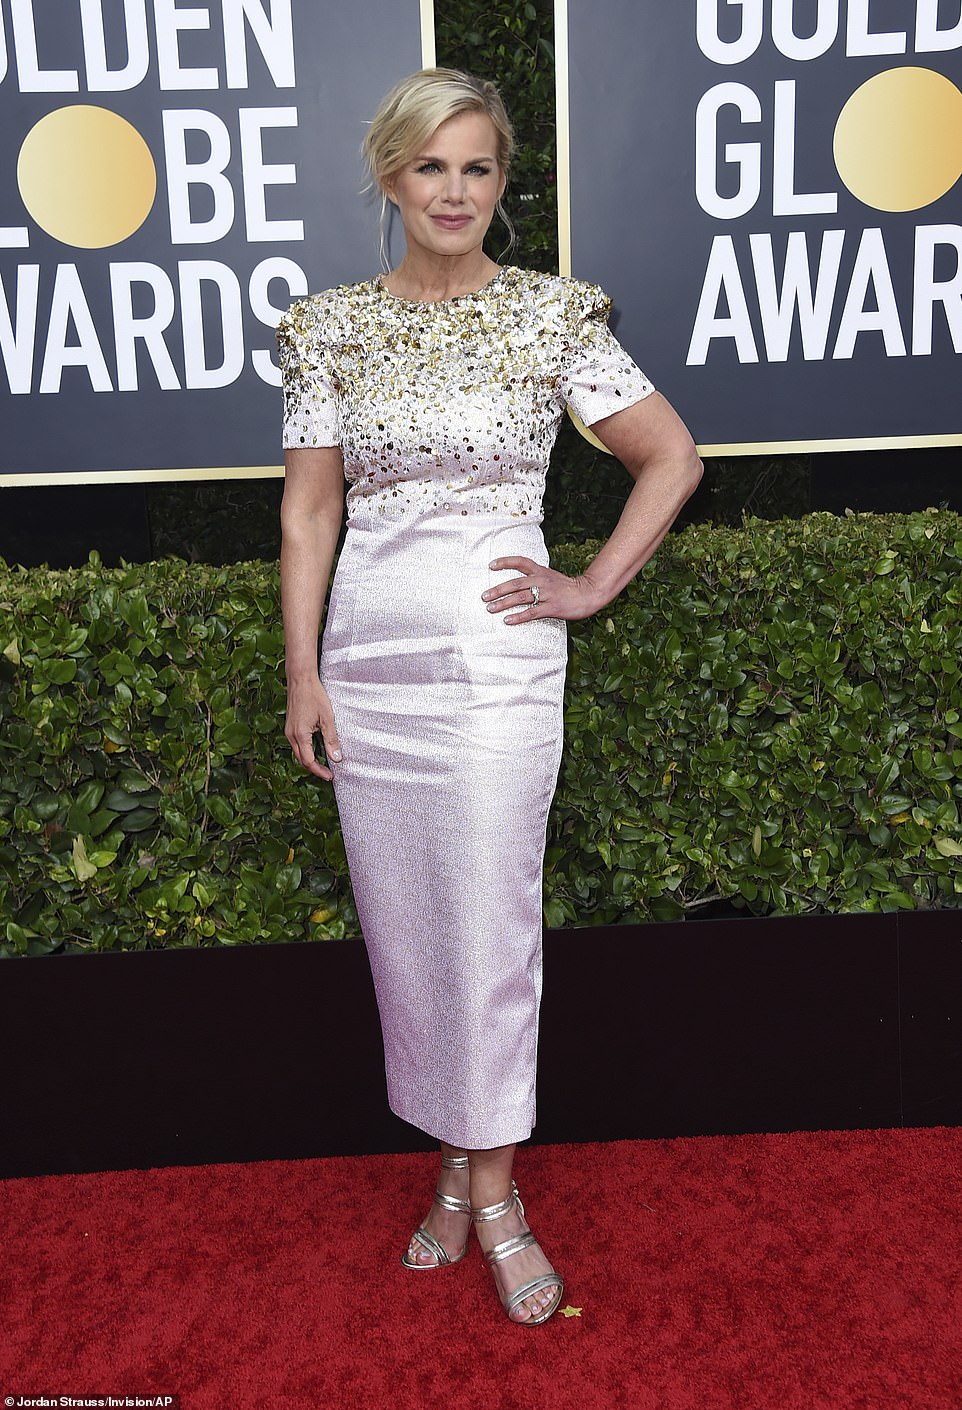 Red Carpet bling Gretchen Carlson In A Long Gown Short Sleeves with Sequins and Rhinestones